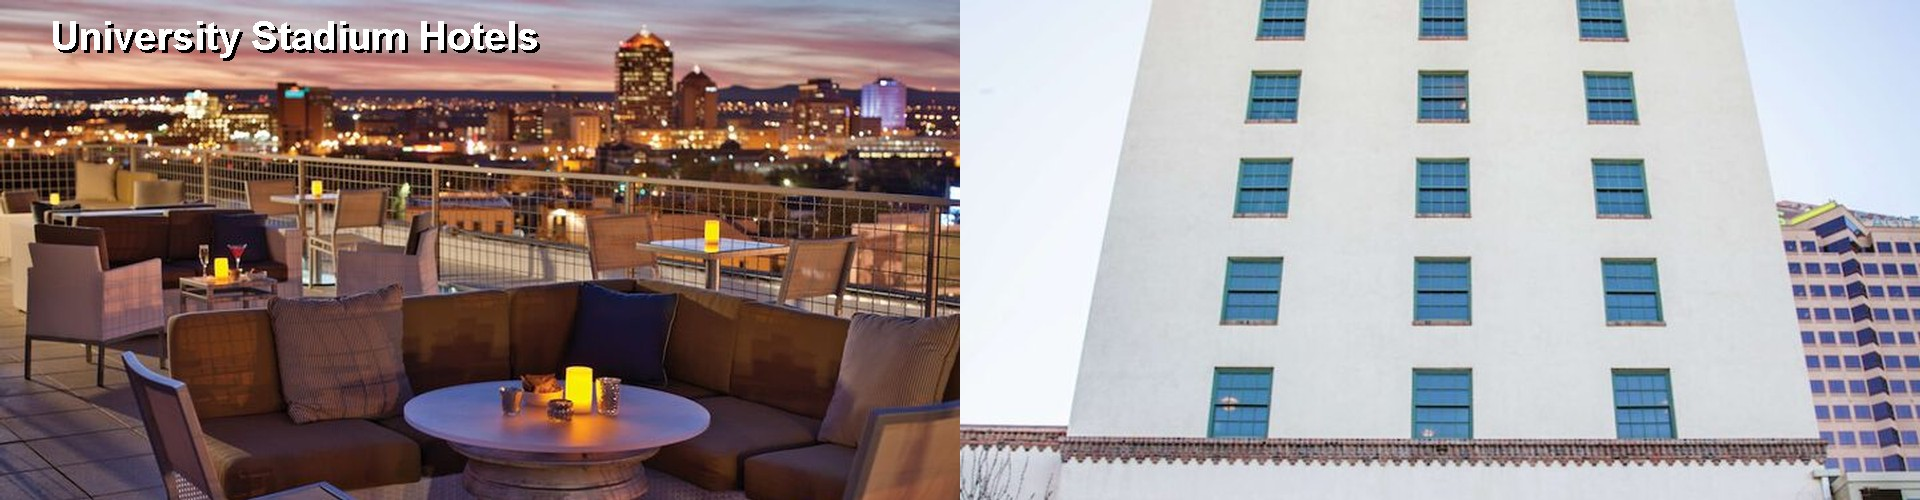 $37+ Hotels Near University Stadium in Albuquerque (NM)